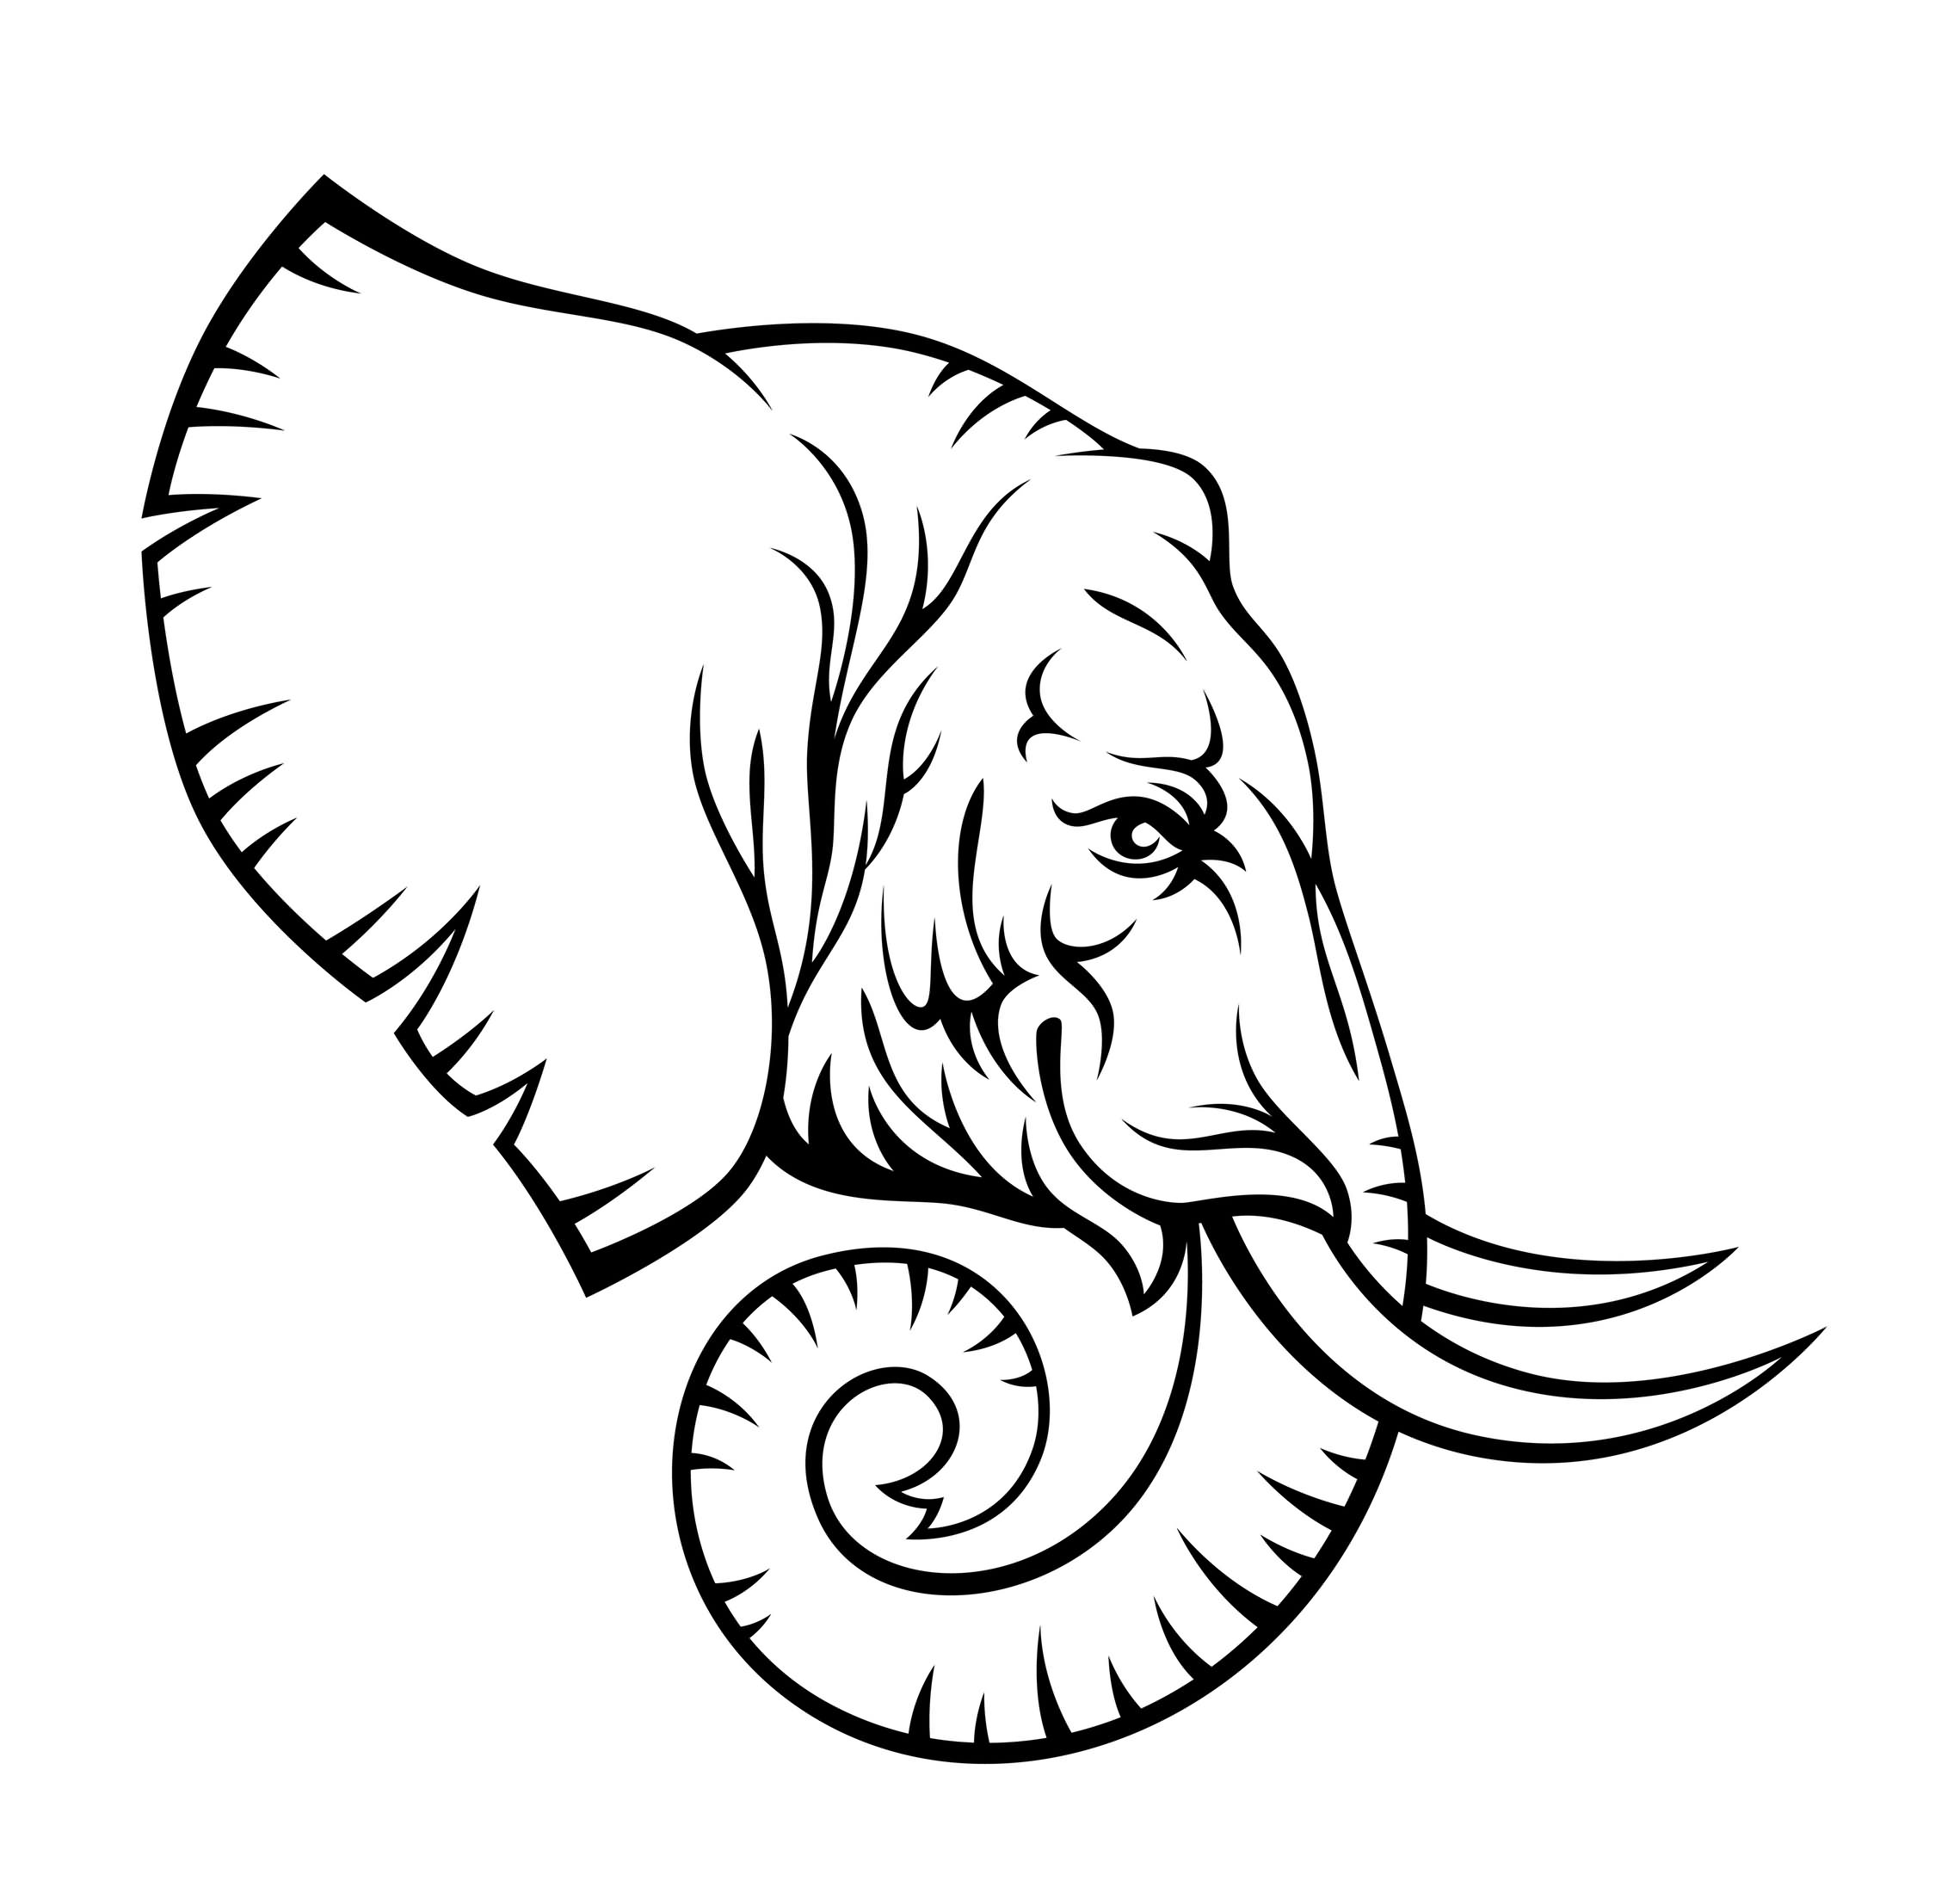 Line Drawing Elephant Face : Black outline elephant head tattoo stencil